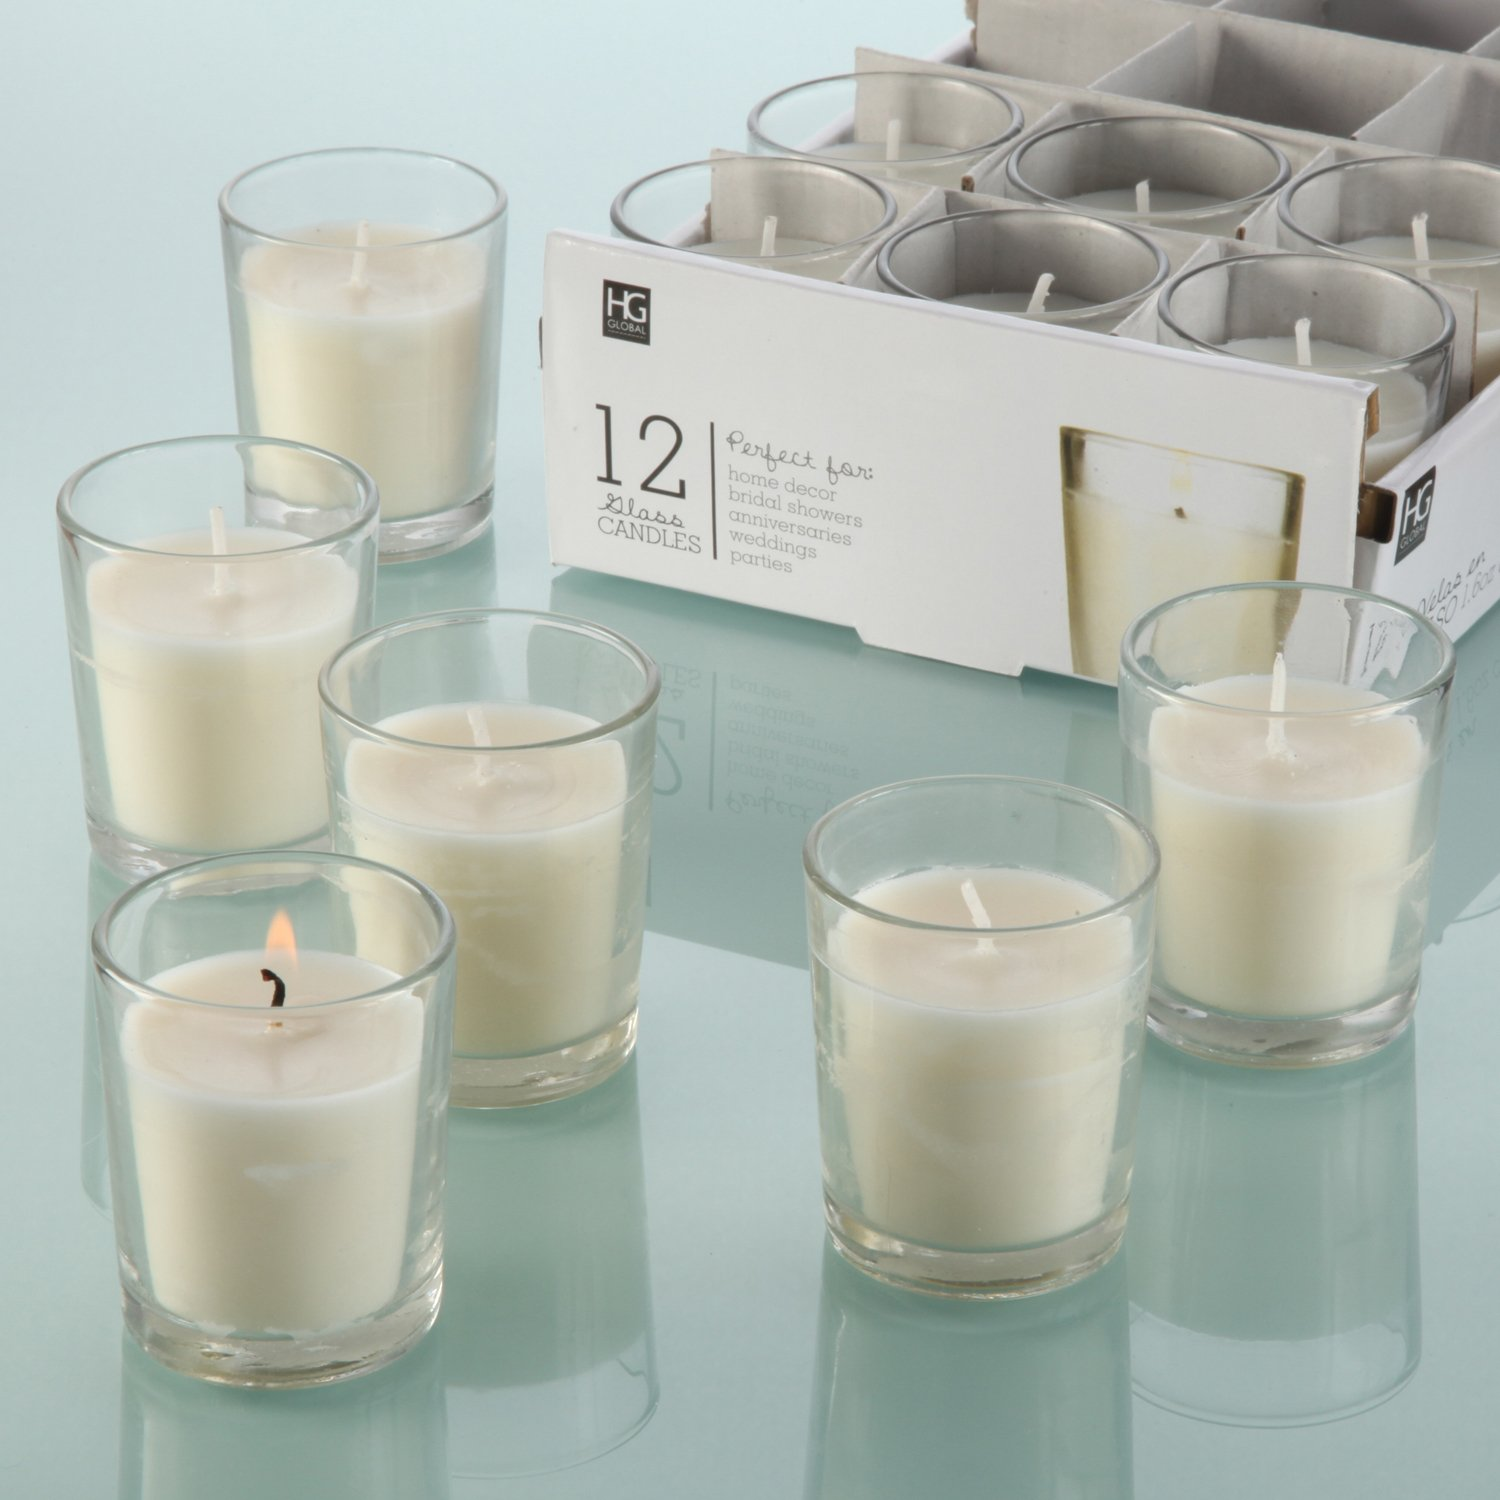 Hosley Set of 96 Unscented Clear Glass Wax Filled Votive Candles - 12 Hour Burn Time. Glass Votive & Hand Poured Candle Included, Ideal Gift or Use for Aromatherapy, Weddings, Party Favors O1